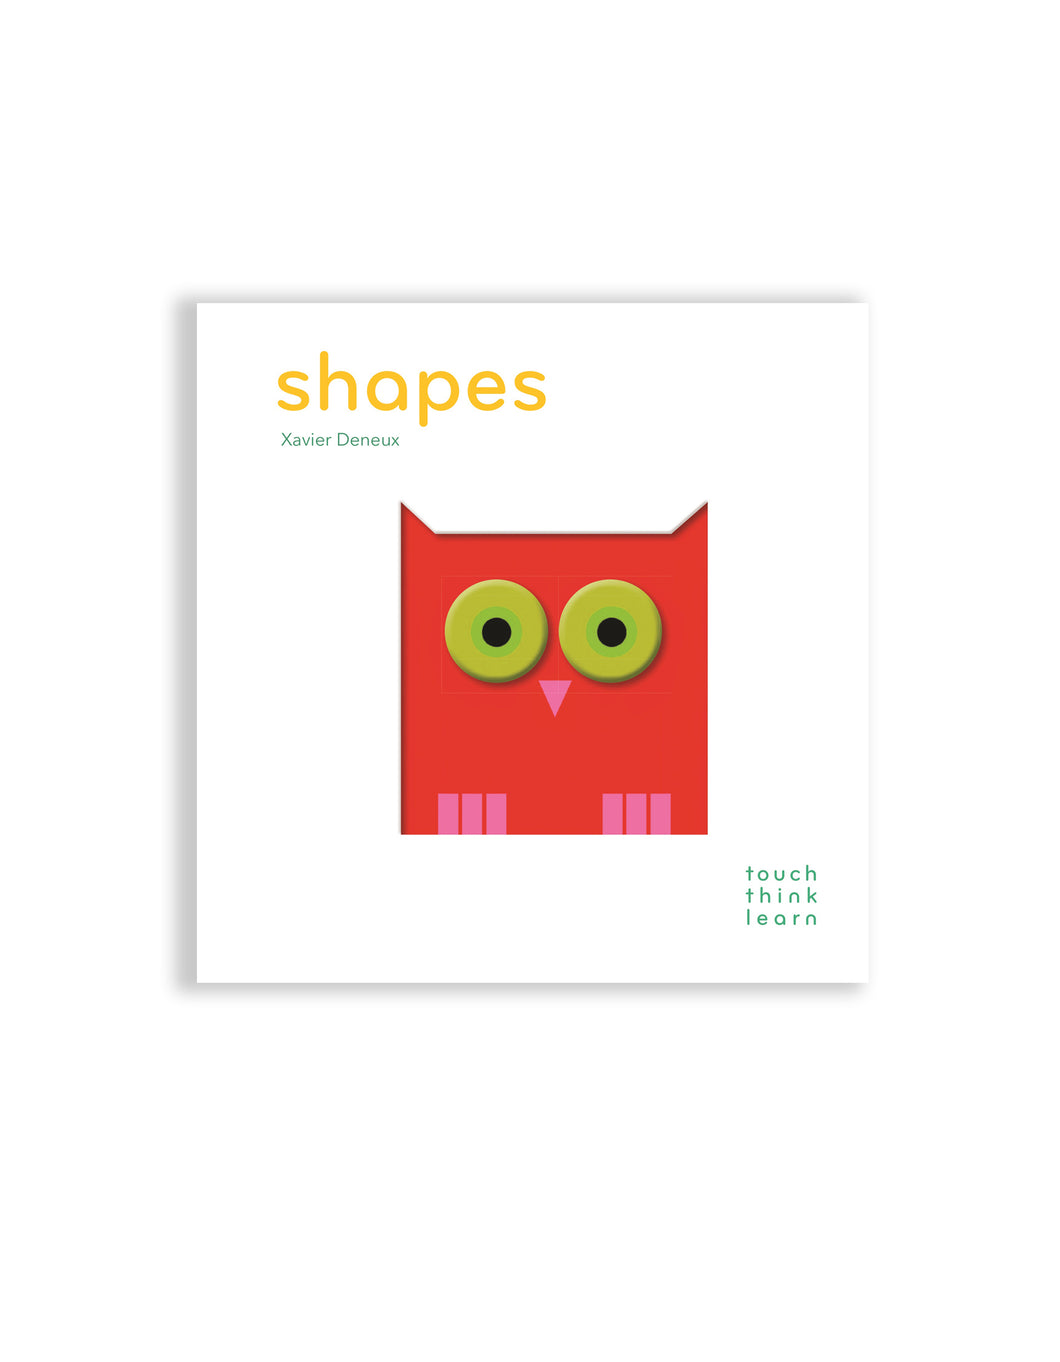 Touchthinklearn- Shapes